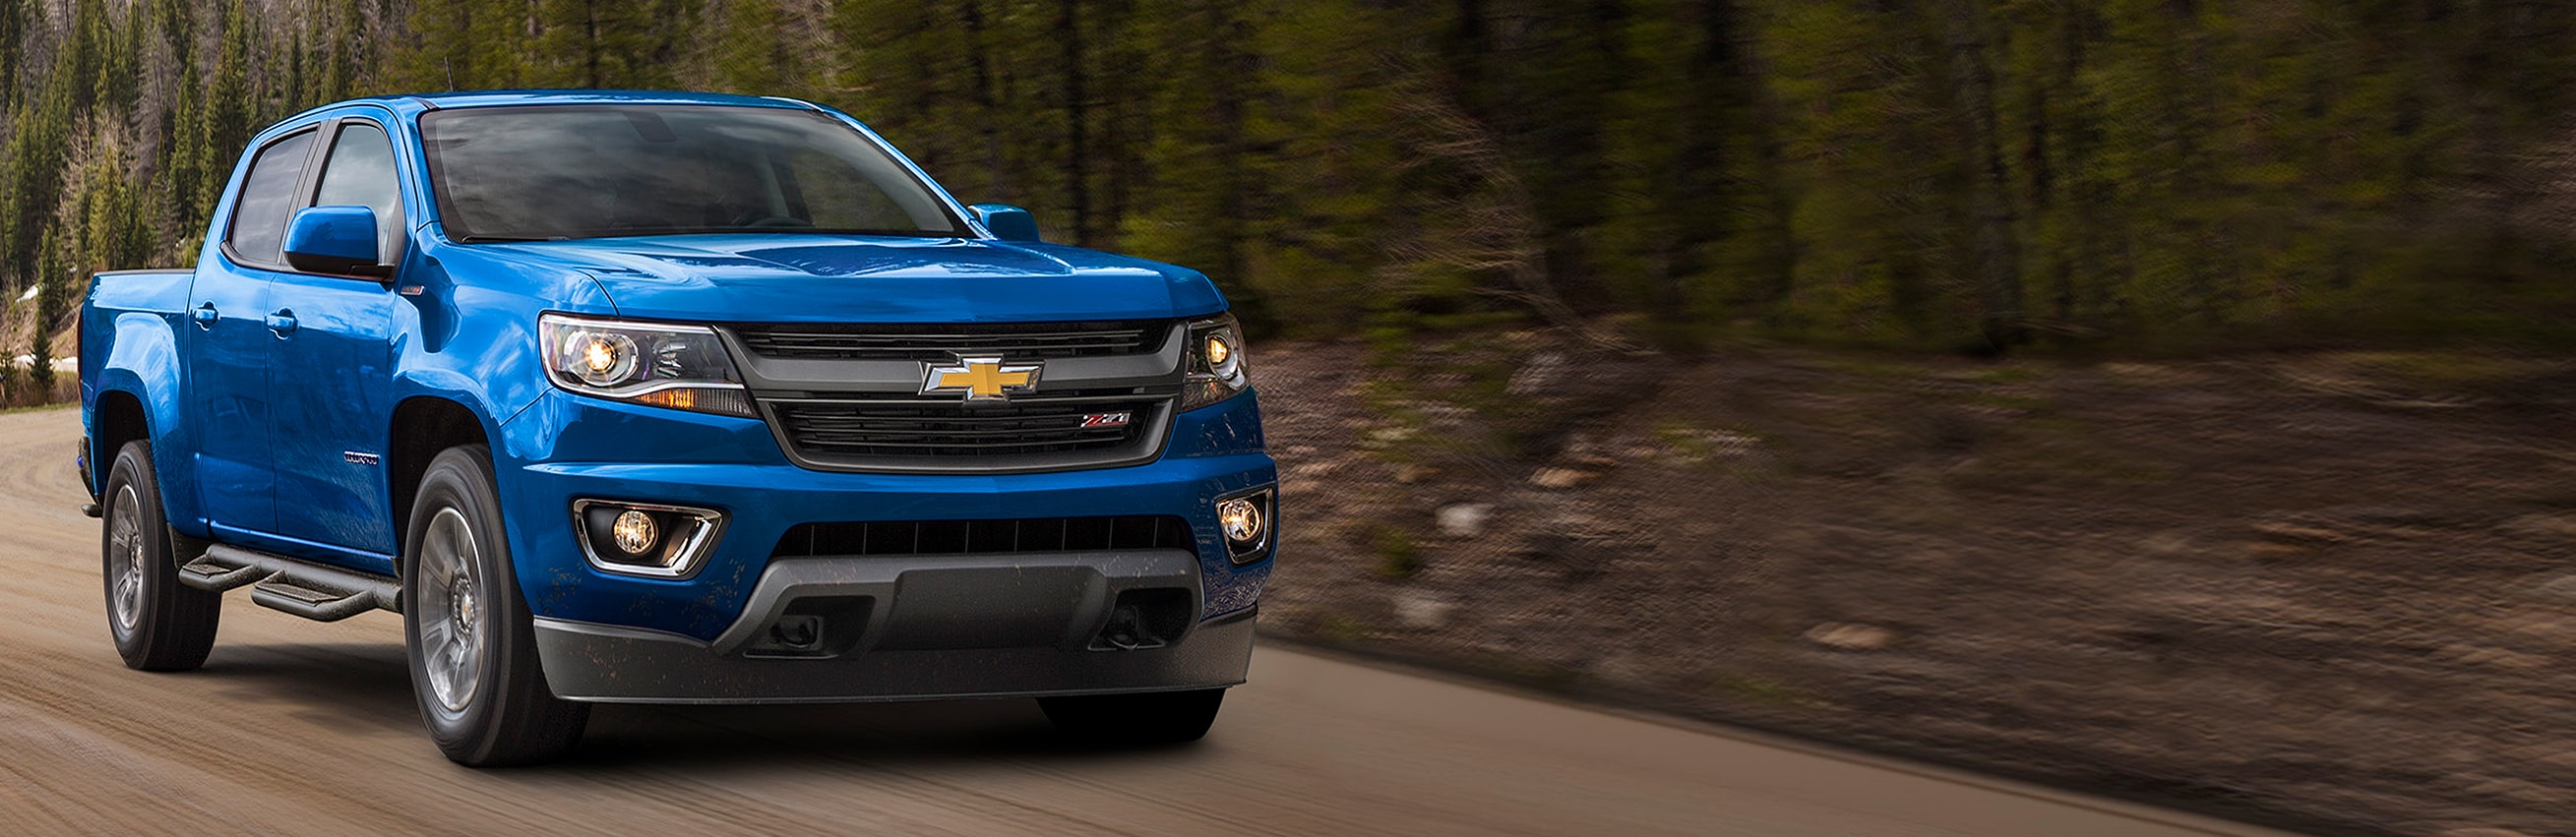 Chevrolet Colorado | Paducah, Kentucky